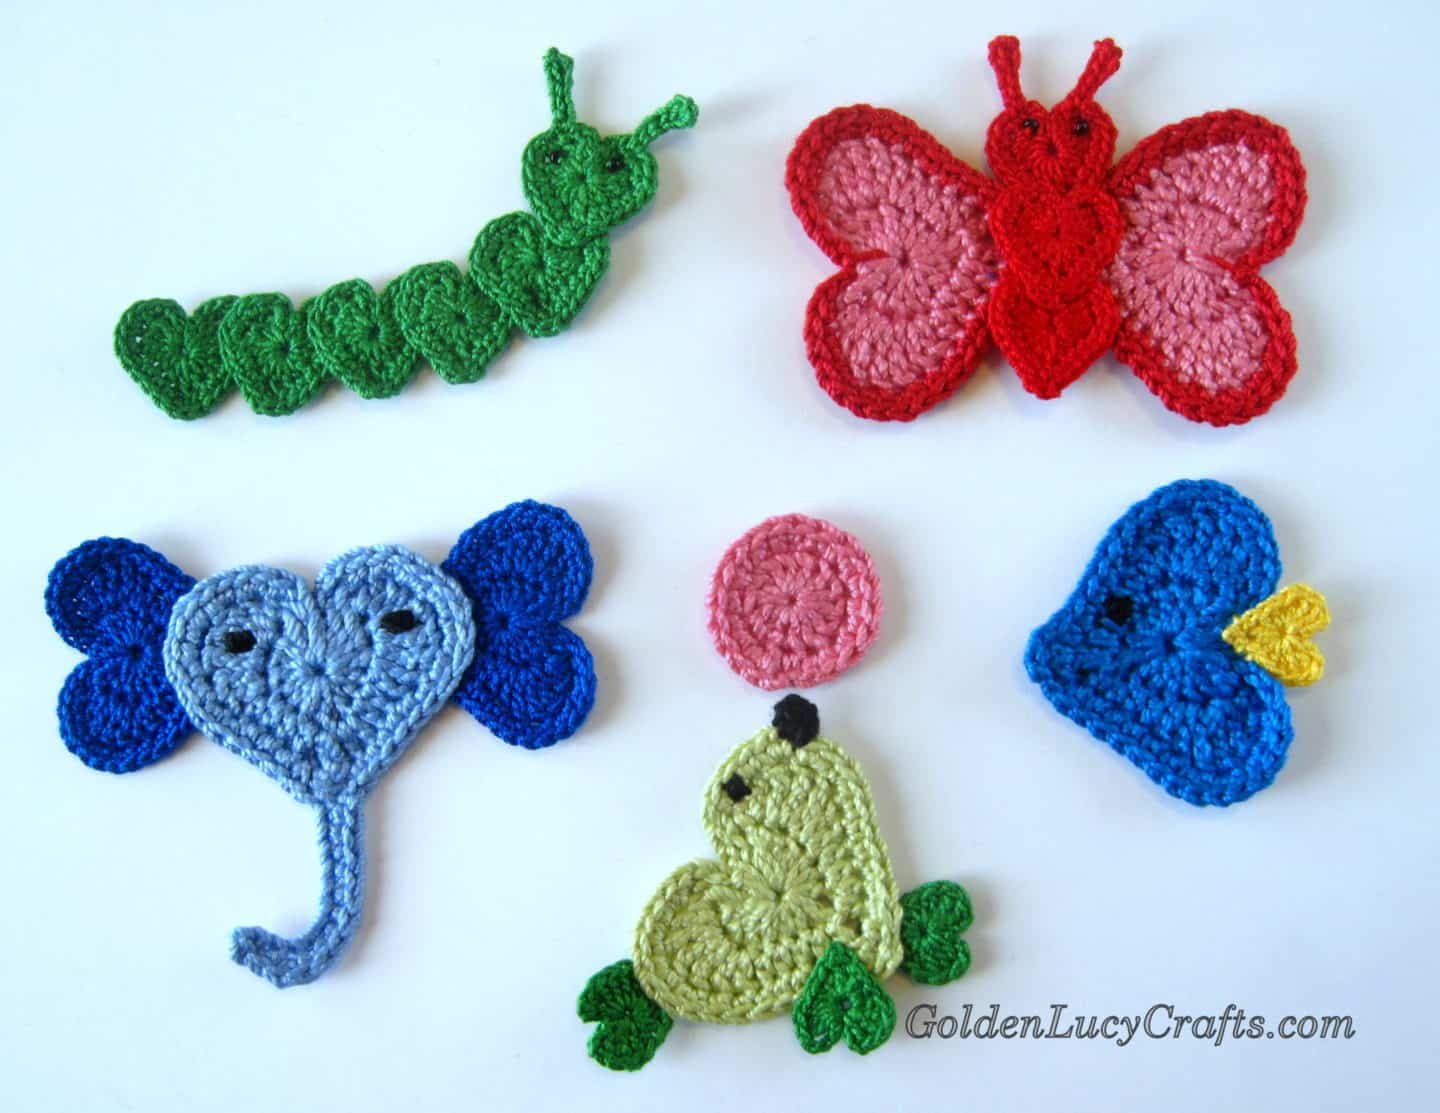 Crochet Heart Shaped Animals Free Crochet Patterns Goldenlucycrafts